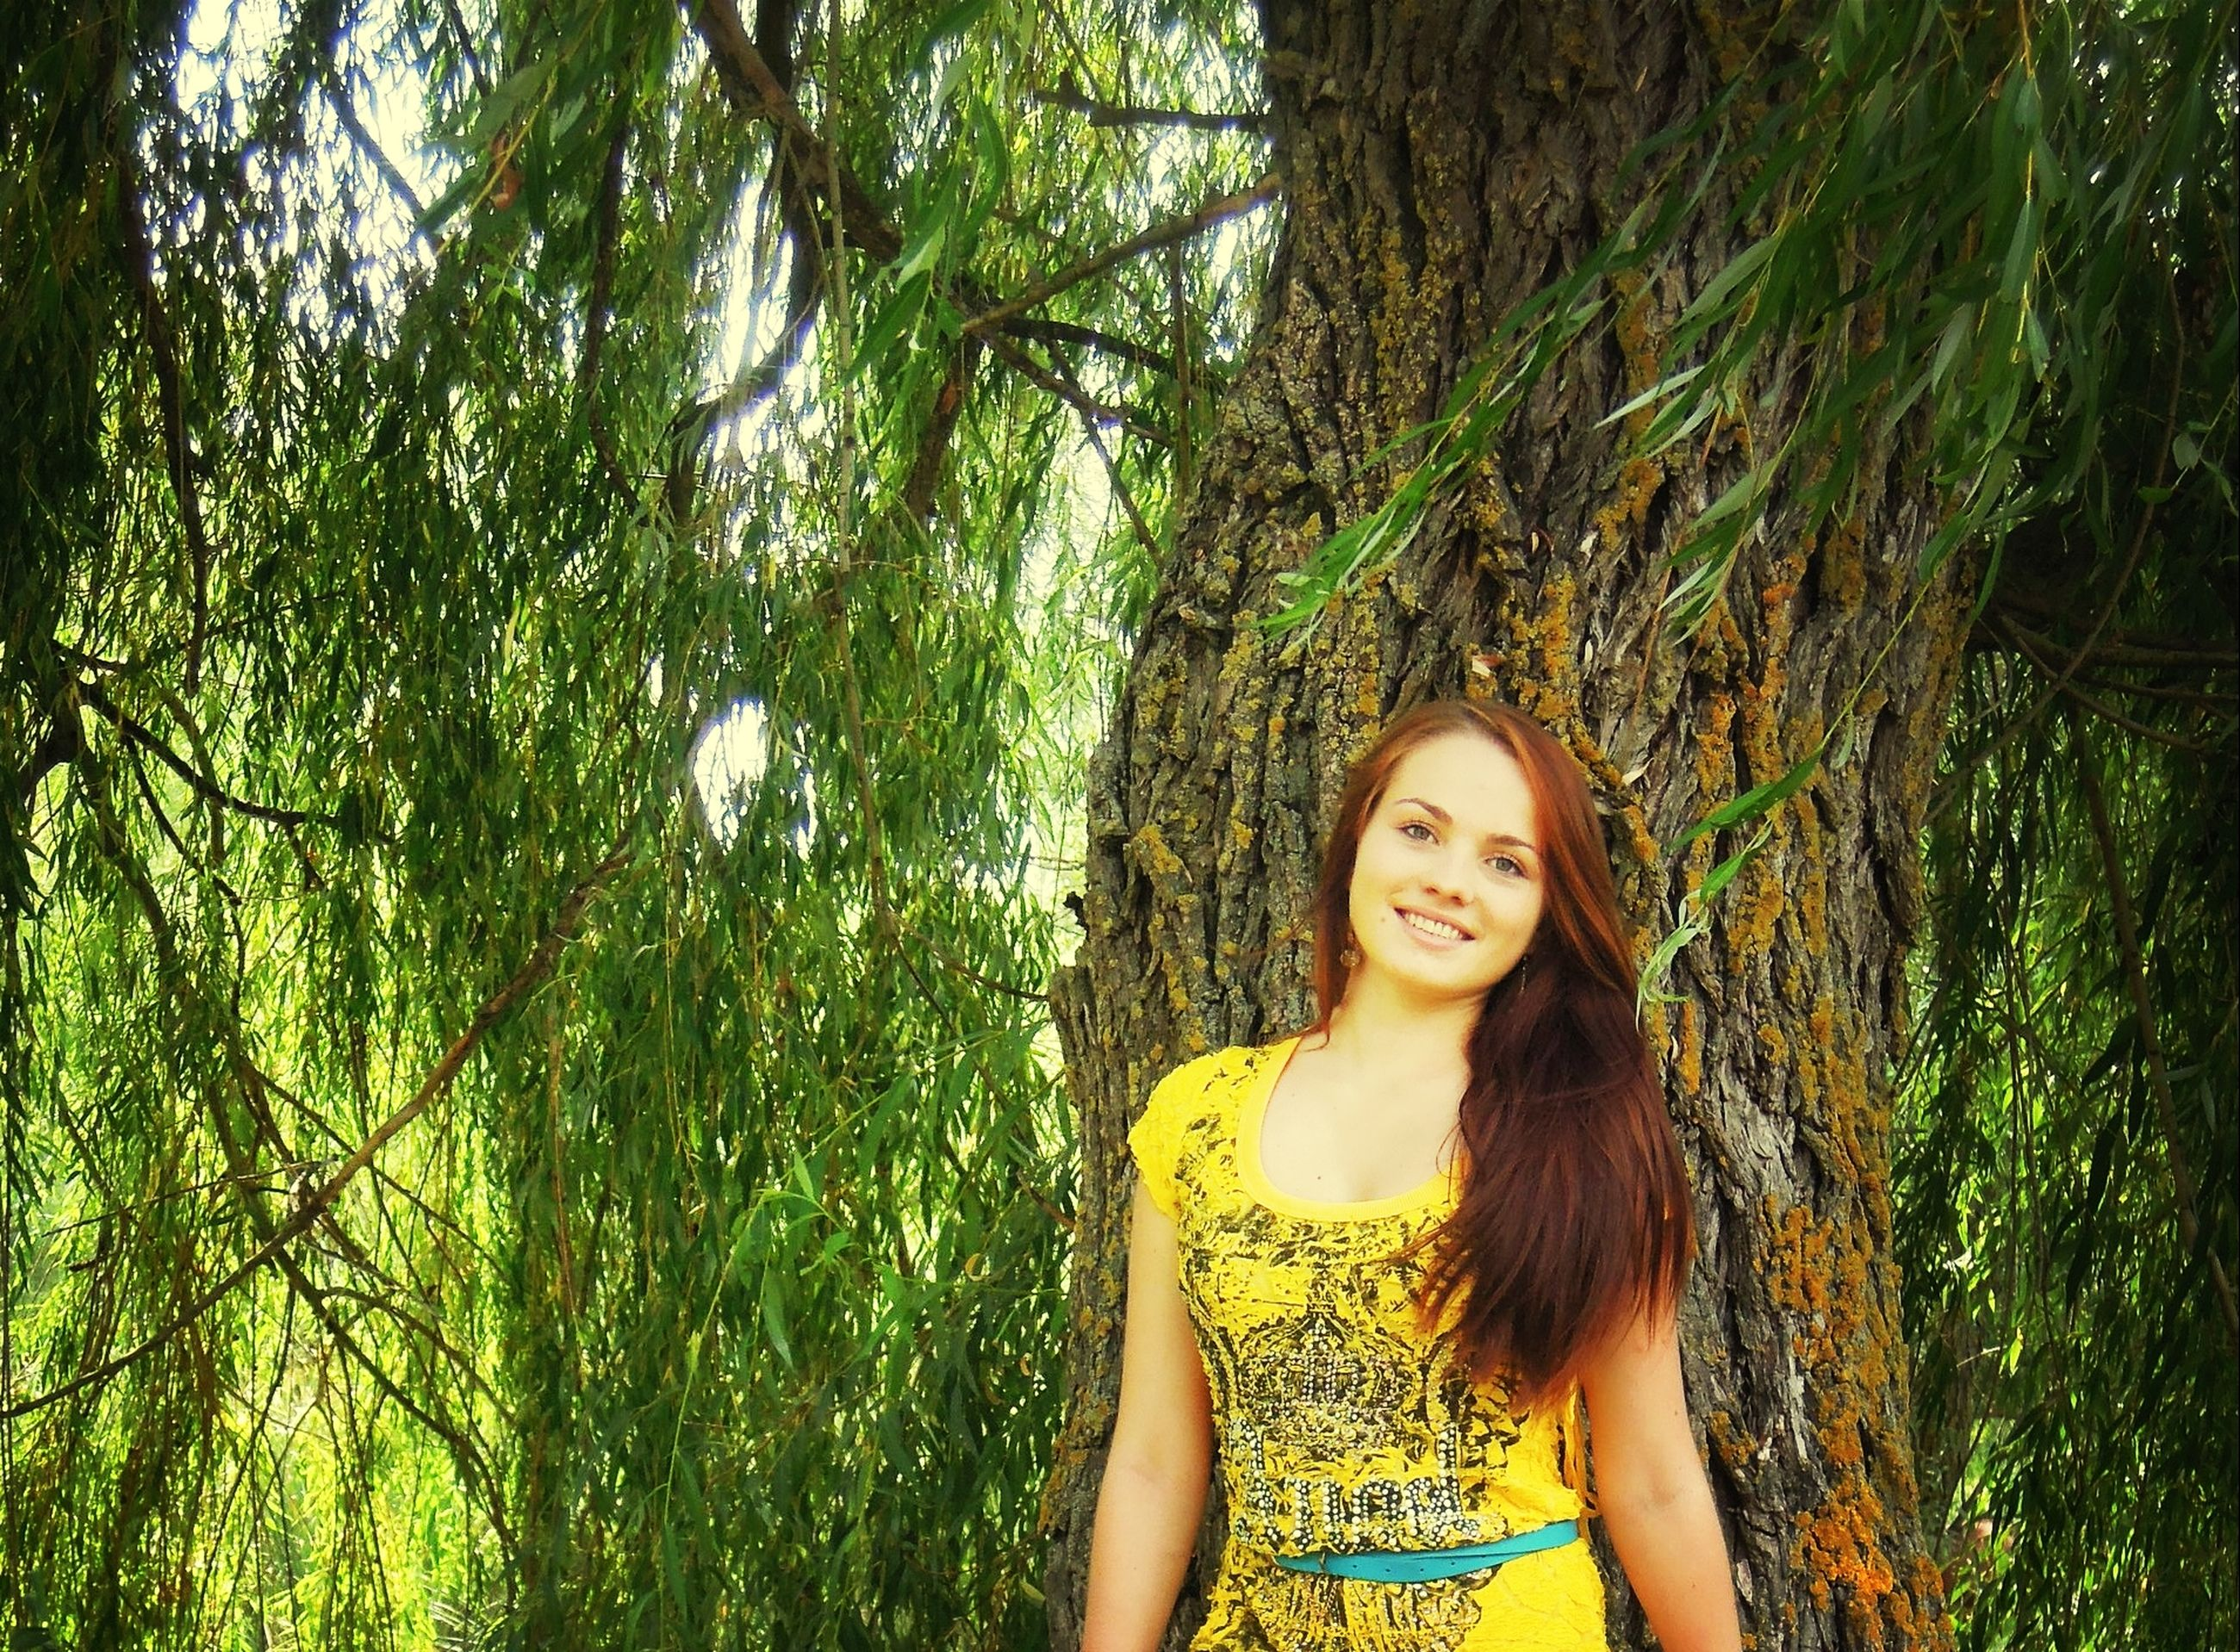 young adult, young women, tree, lifestyles, person, leisure activity, looking at camera, portrait, long hair, casual clothing, front view, smiling, standing, growth, green color, tree trunk, nature